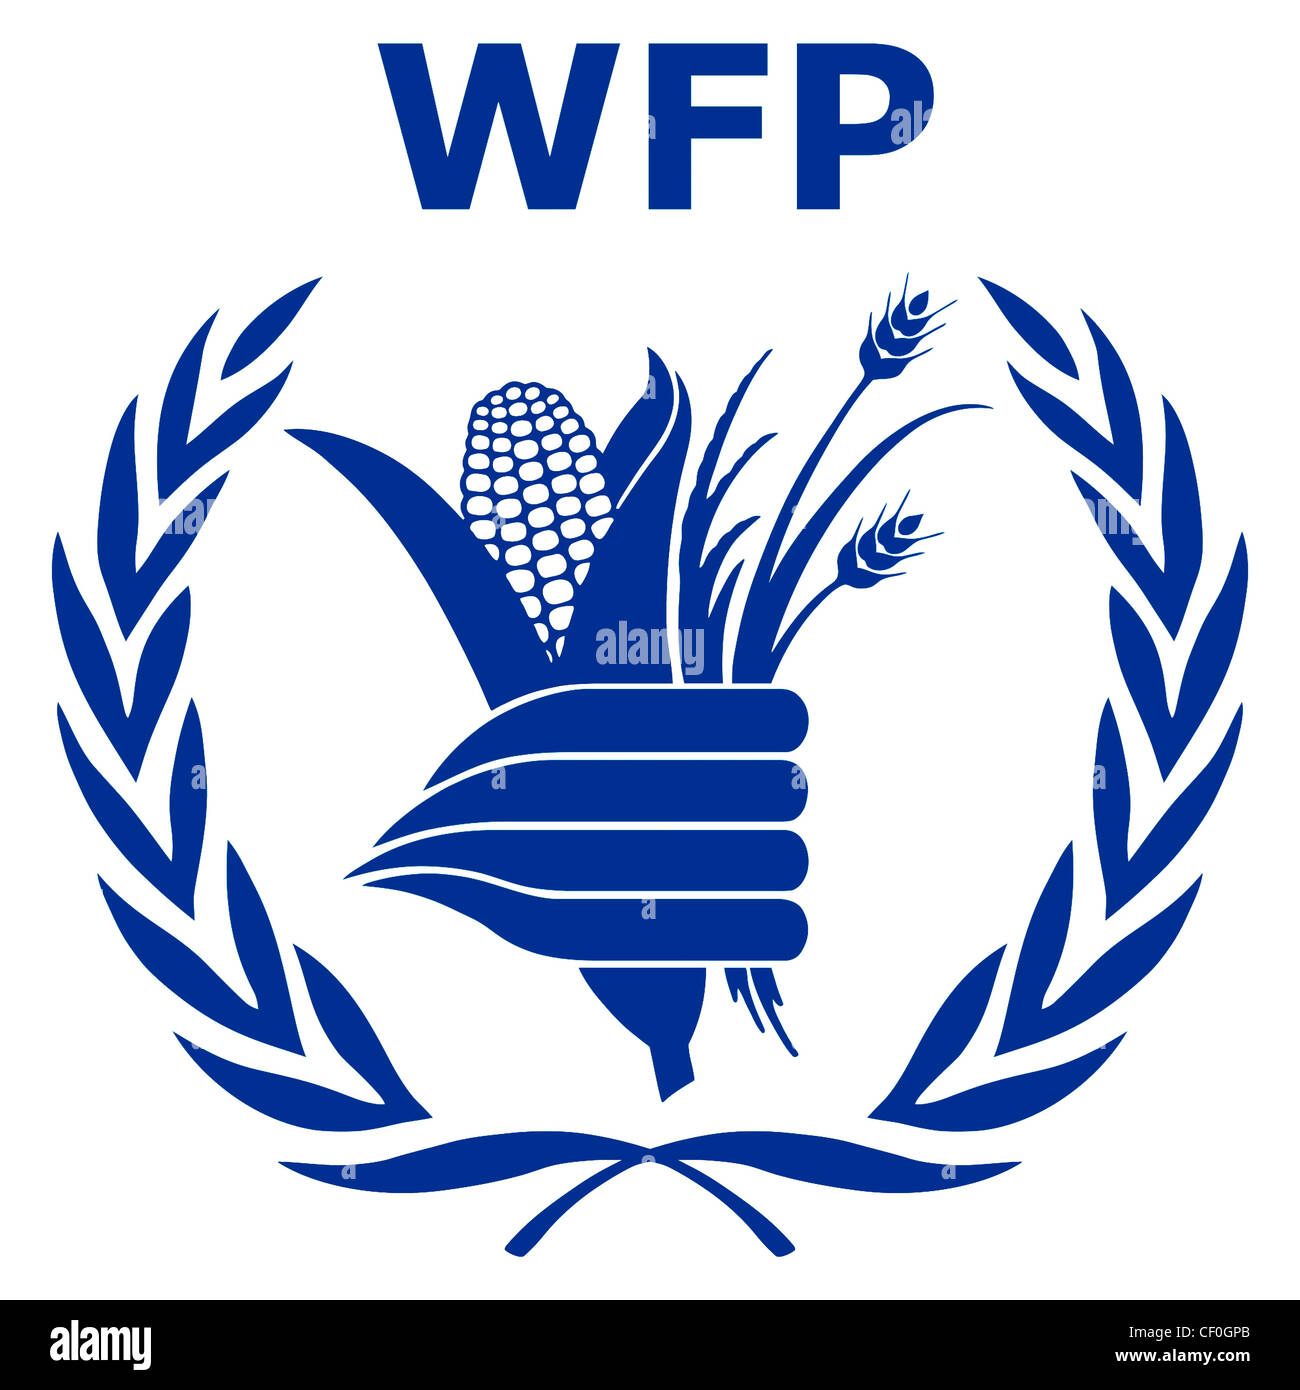 Logo Of United Nations World Food Programme Wfp With Seat In Rome Stock Photo Alamy